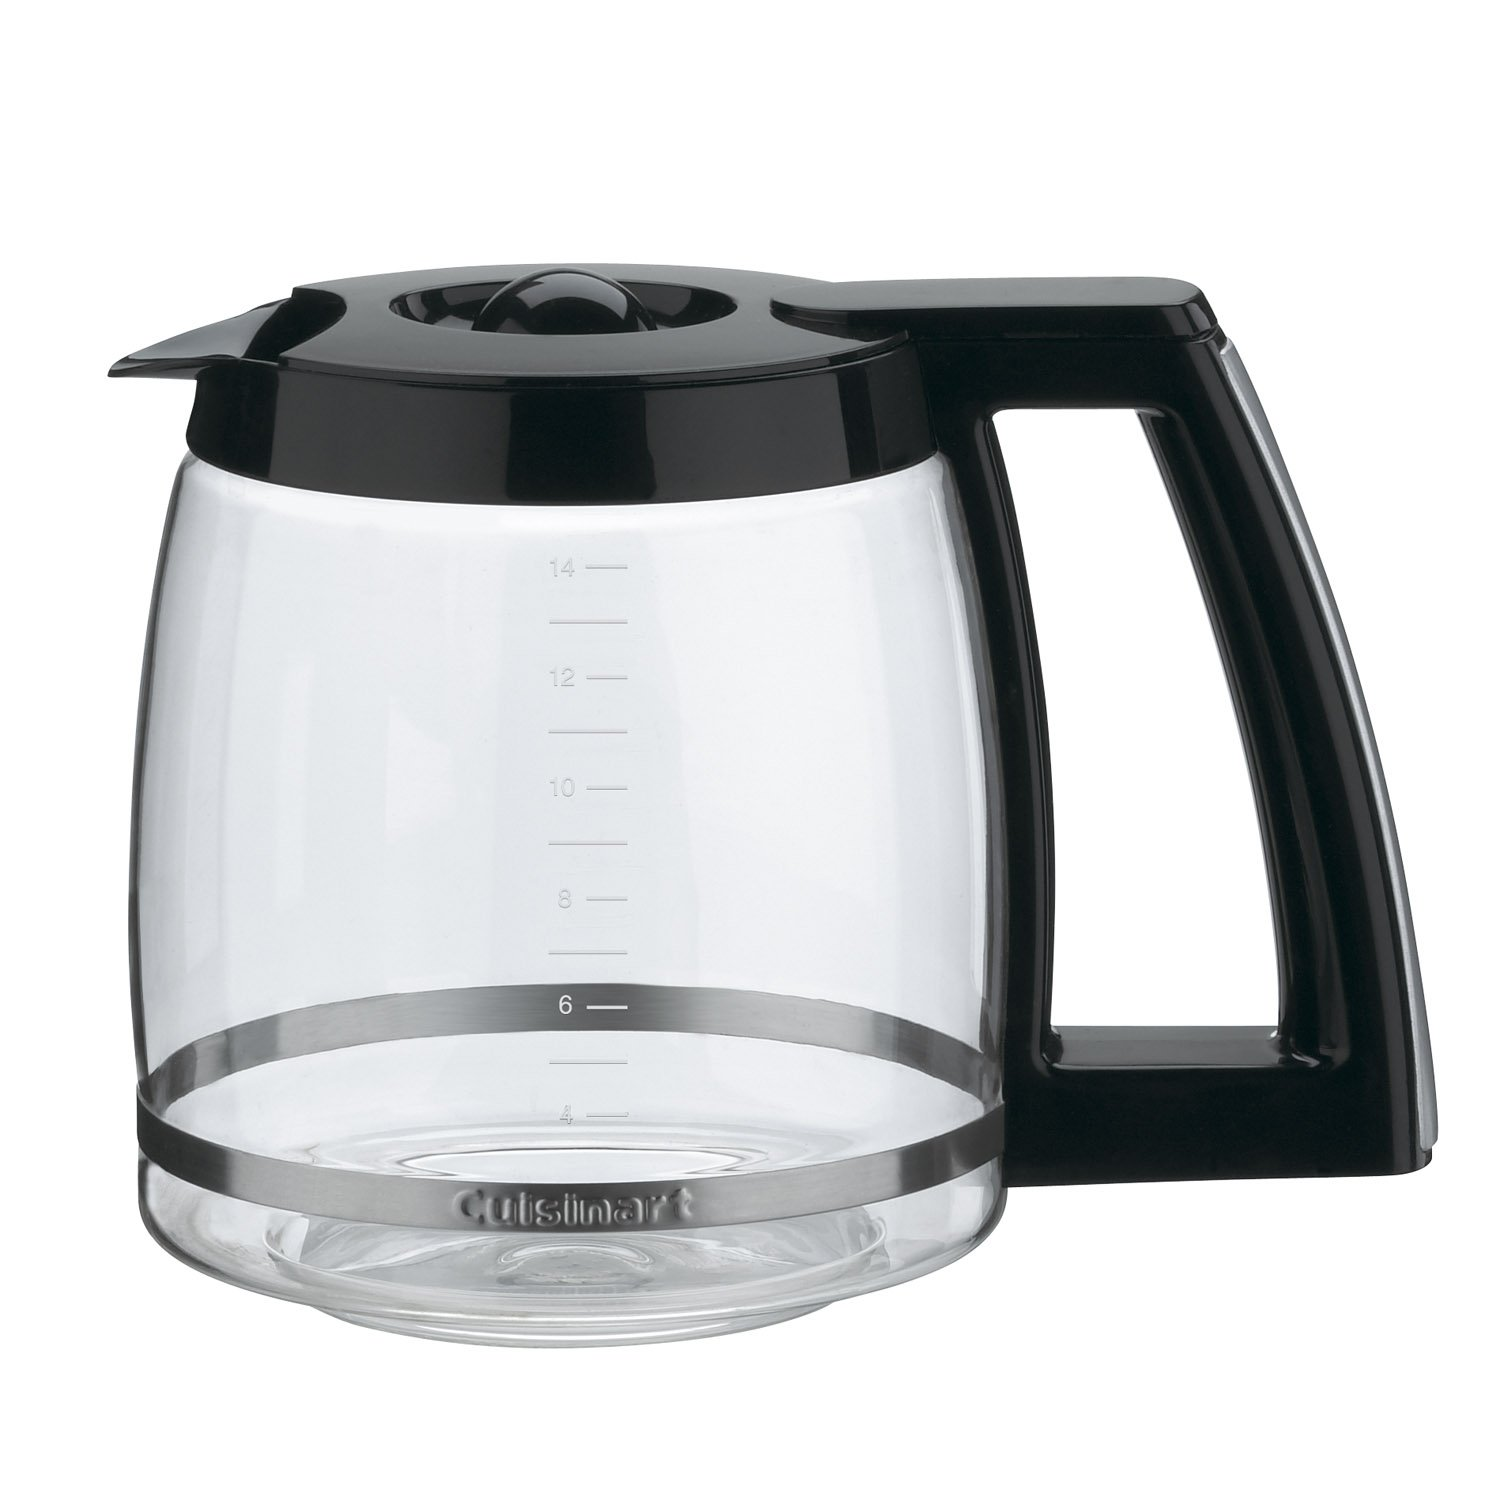 Cuisinart coffee maker stainless steel carafe - Amazon Com Cuisinart Dcc 2600 Brew Central 14 Cup Programmable Coffeemaker With Glass Carafe Drip Coffeemakers Kitchen Dining